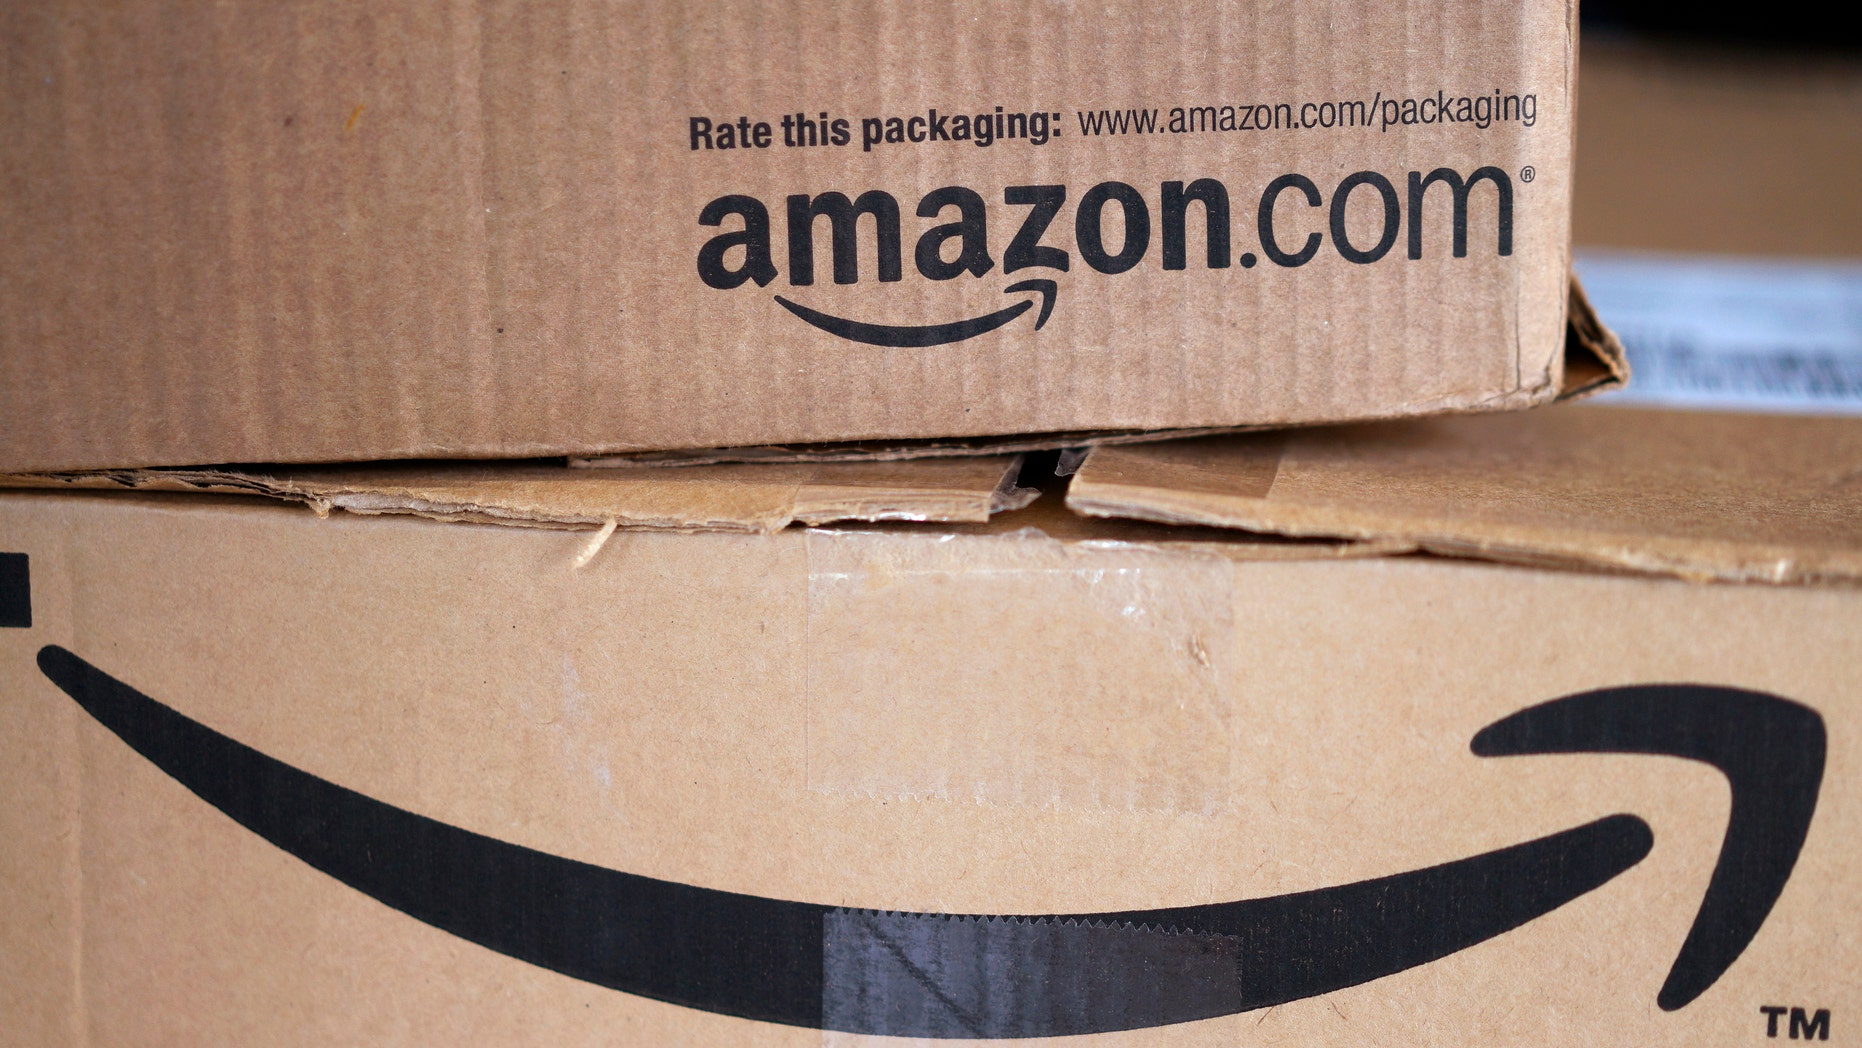 Two freshly delivered Amazon boxes are seen on a counter in Golden, Colorado August 27, 2014. With people increasingly accessing the Internet from smartphones and tablets, online companies ranging from social networks such as Facebook Inc to e-commerce companies like Amazon.com Inc have been investing heavily to develop their mobile platforms.  REUTERS/Rick Wilking (UNITED STATES - Tags: BUSINESS SCIENCE TECHNOLOGY TELECOMS) - RTR44130